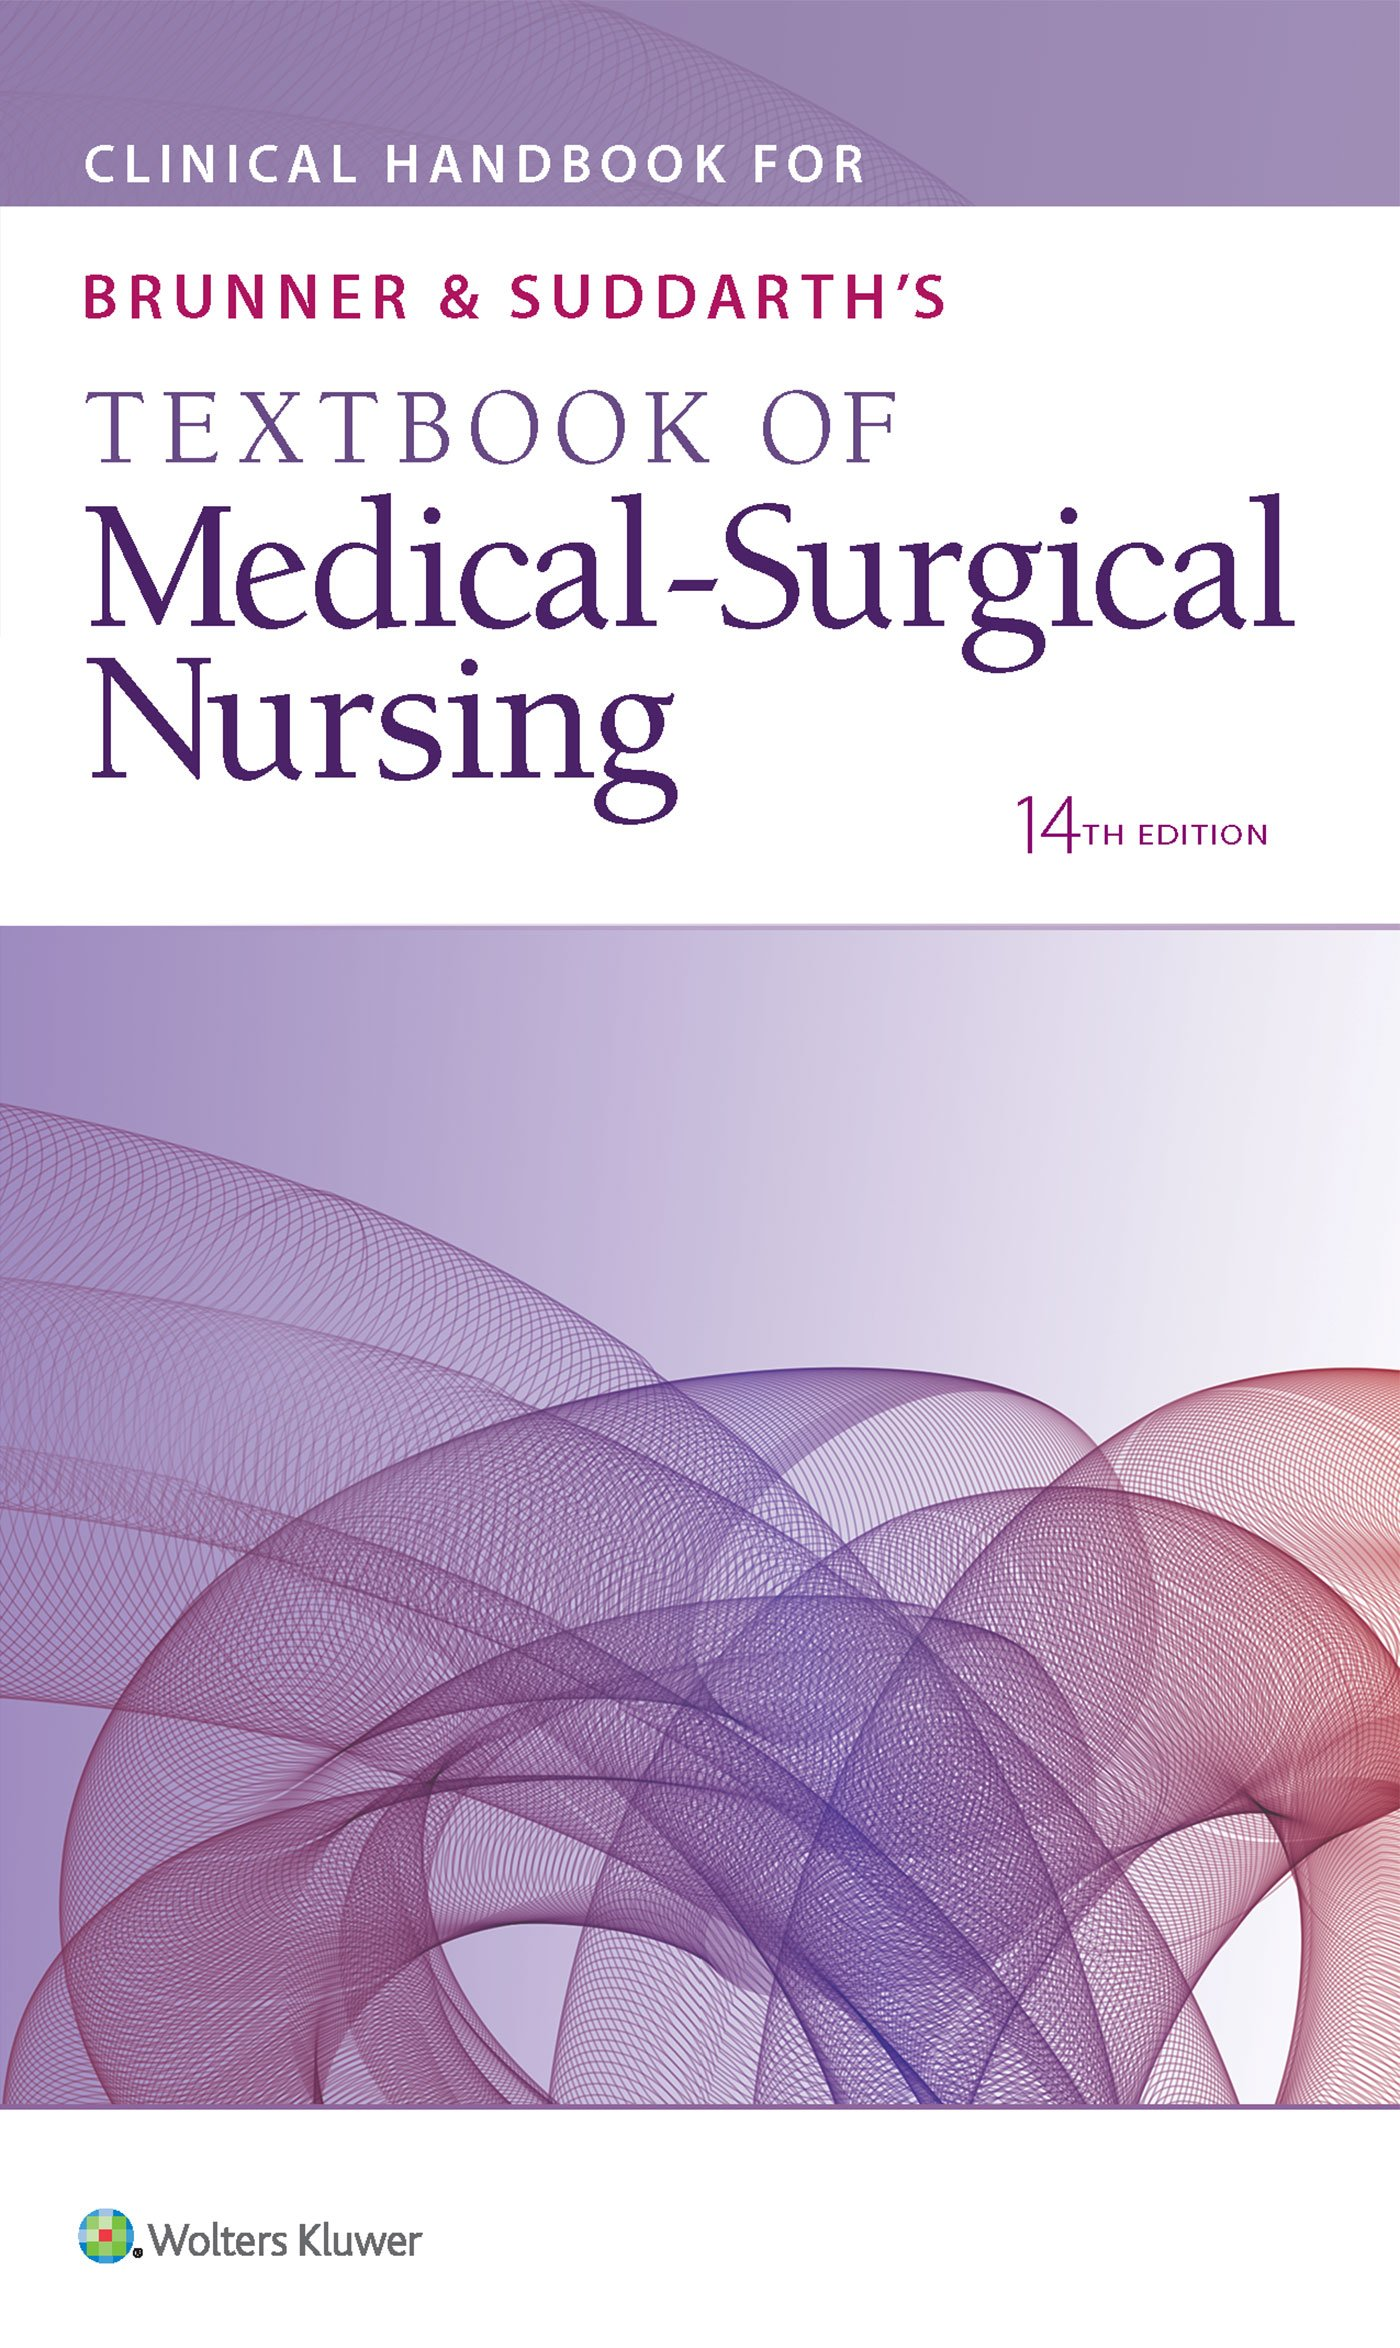 Clinical Handbook for Brunner & Suddarth's Textbook of Medical-Surgical  Nursing: Amazon.co.uk: Lippincott Williams & Wilkins: Books